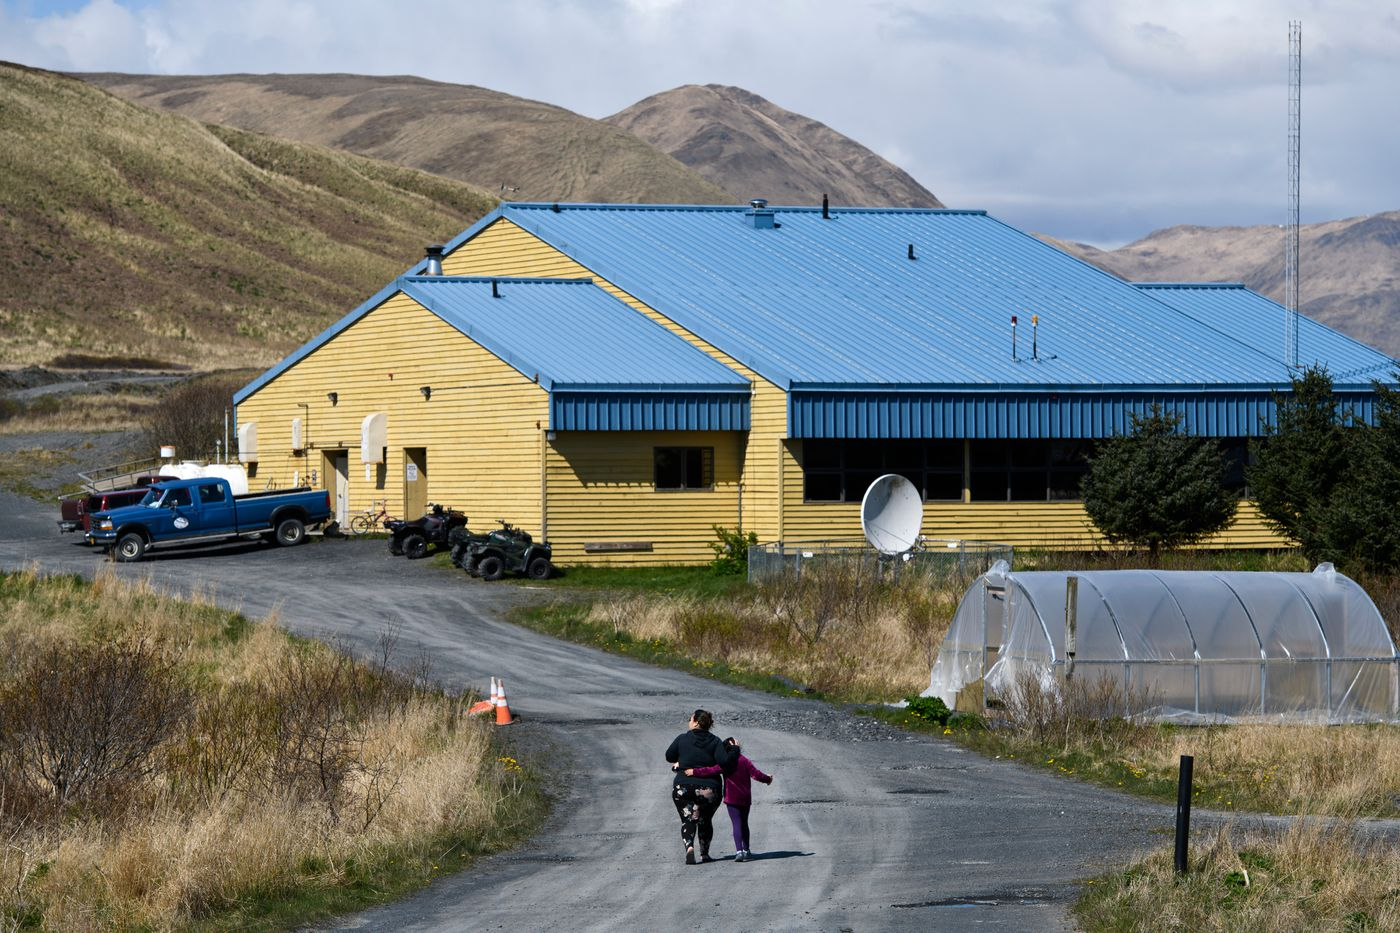 Akhiok residents walk to the school for an Alutiiq dance rehearsal on May 14. The Akhiok School finished the school year with 13 students in kindergarten through 12th grade. (Marc Lester / ADN)